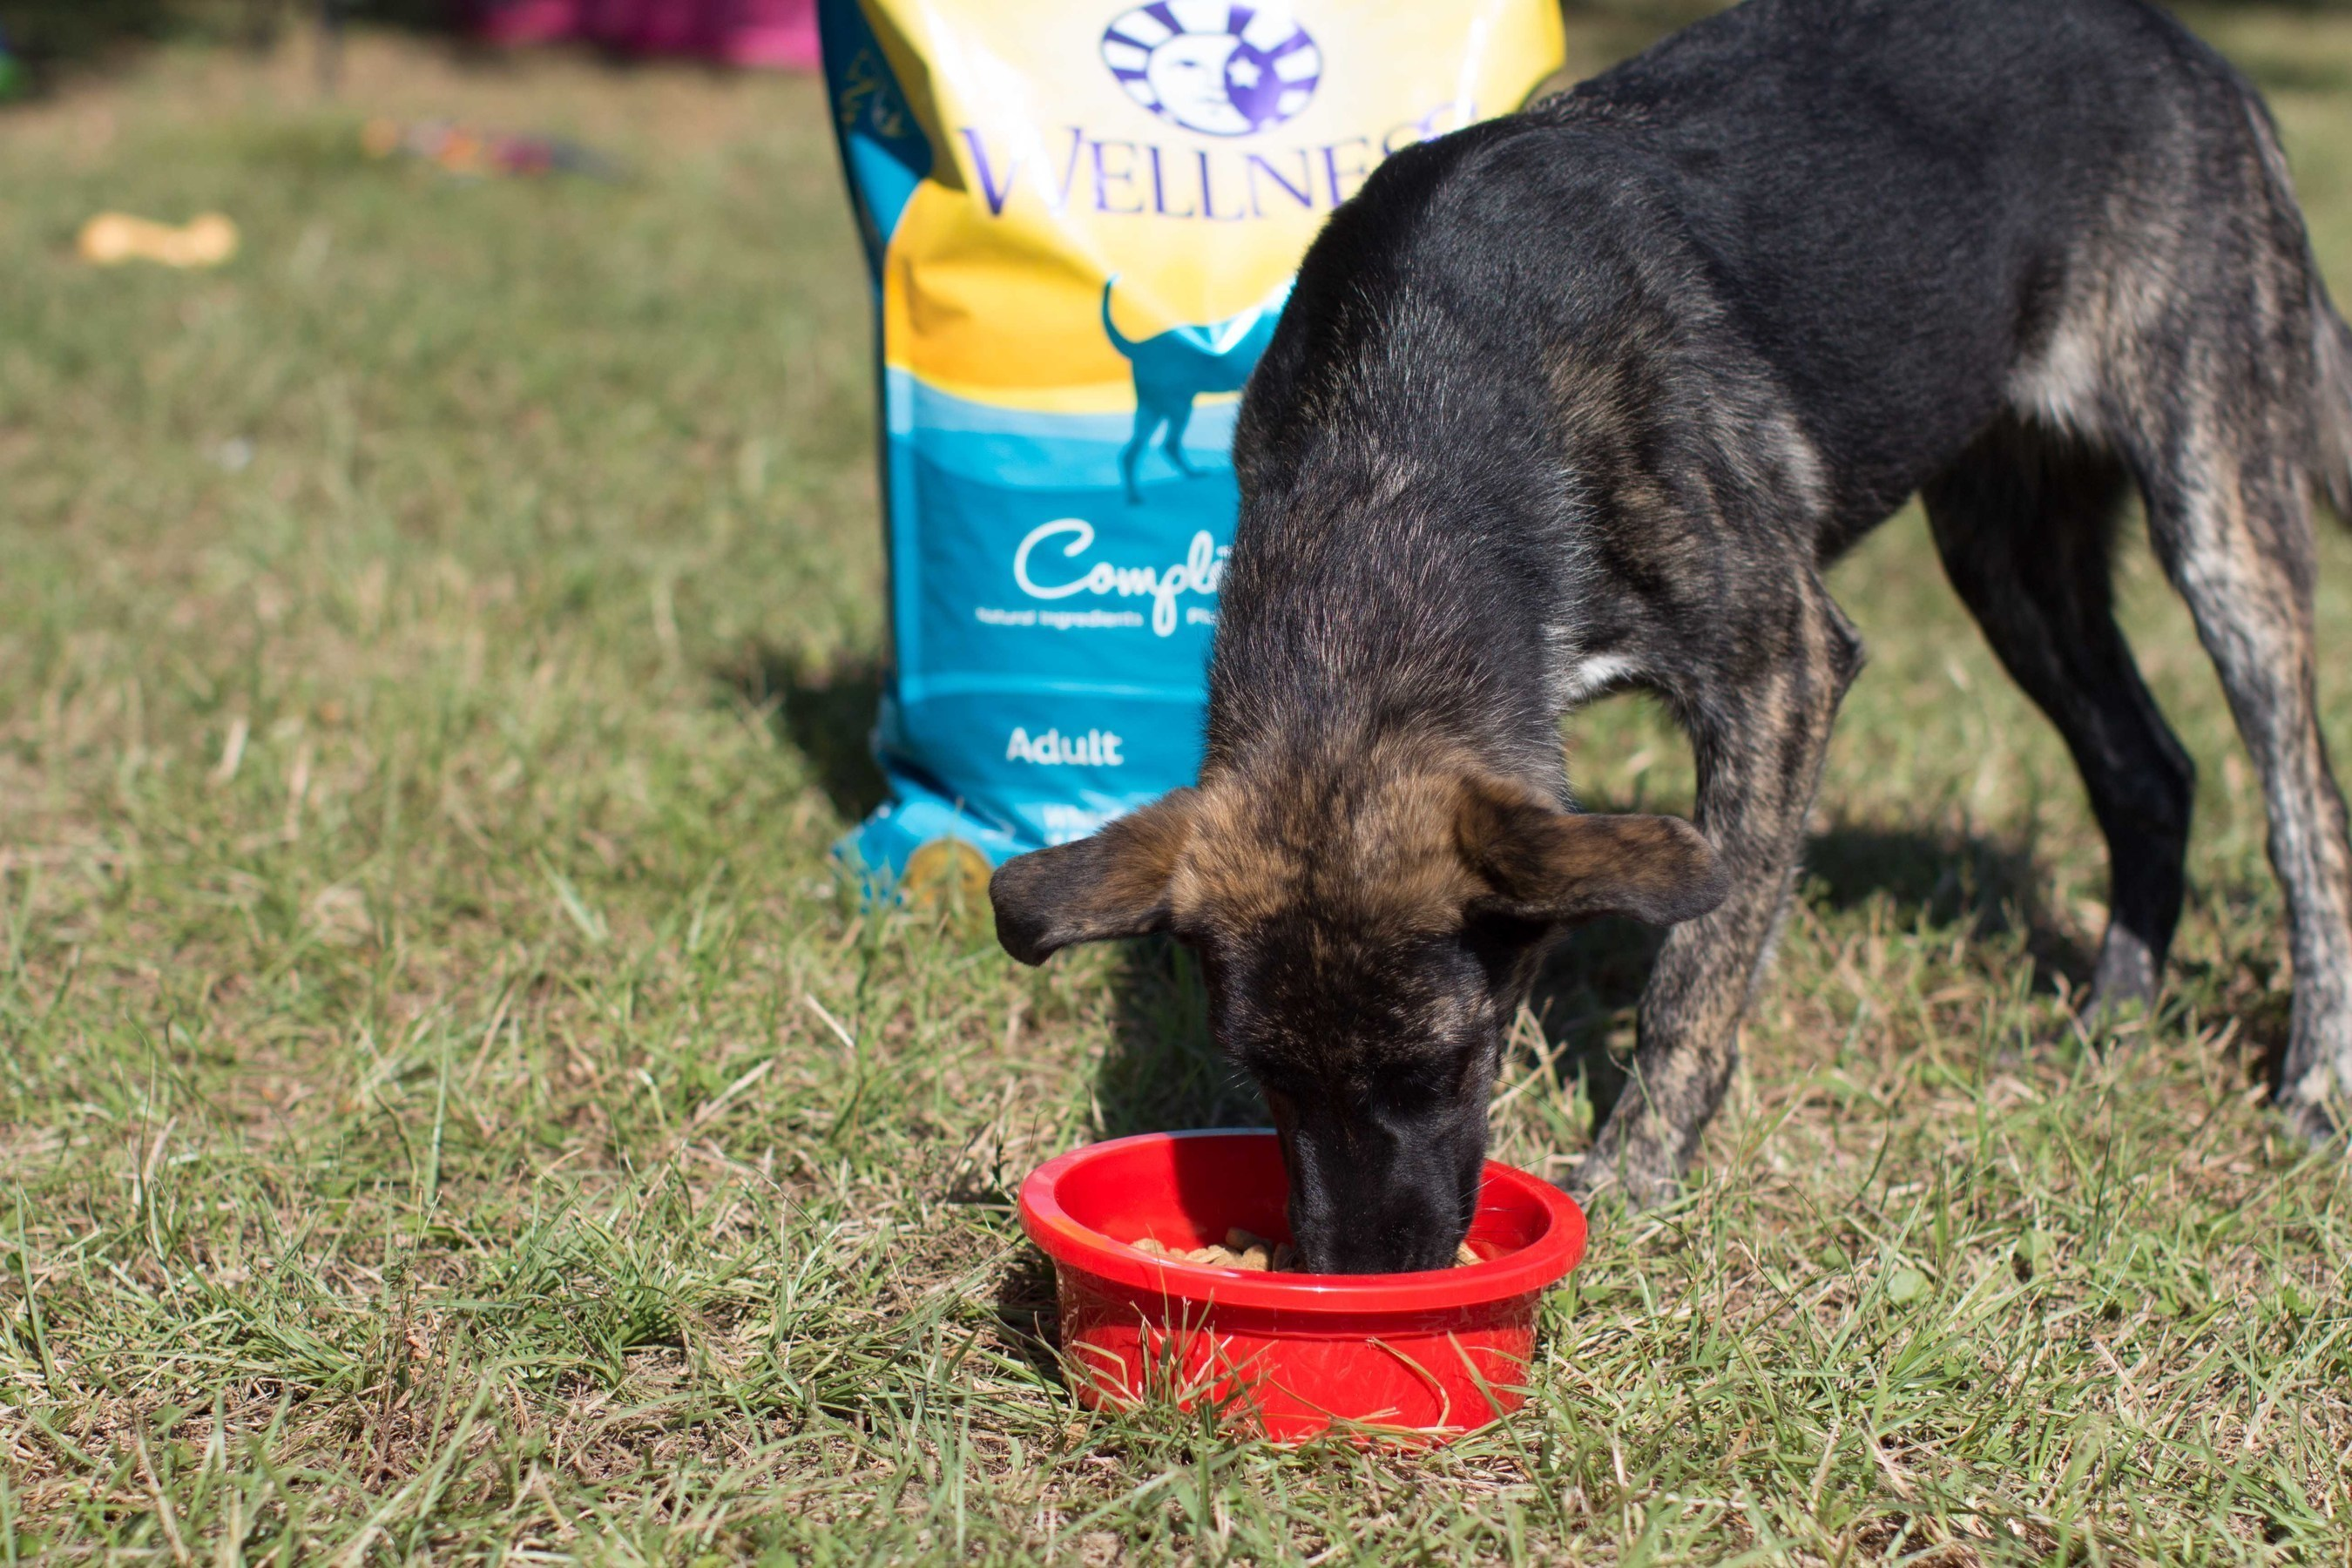 Rescued dog enjoying Wellness Natural Pet Food from 25 ton donation to CAABR.